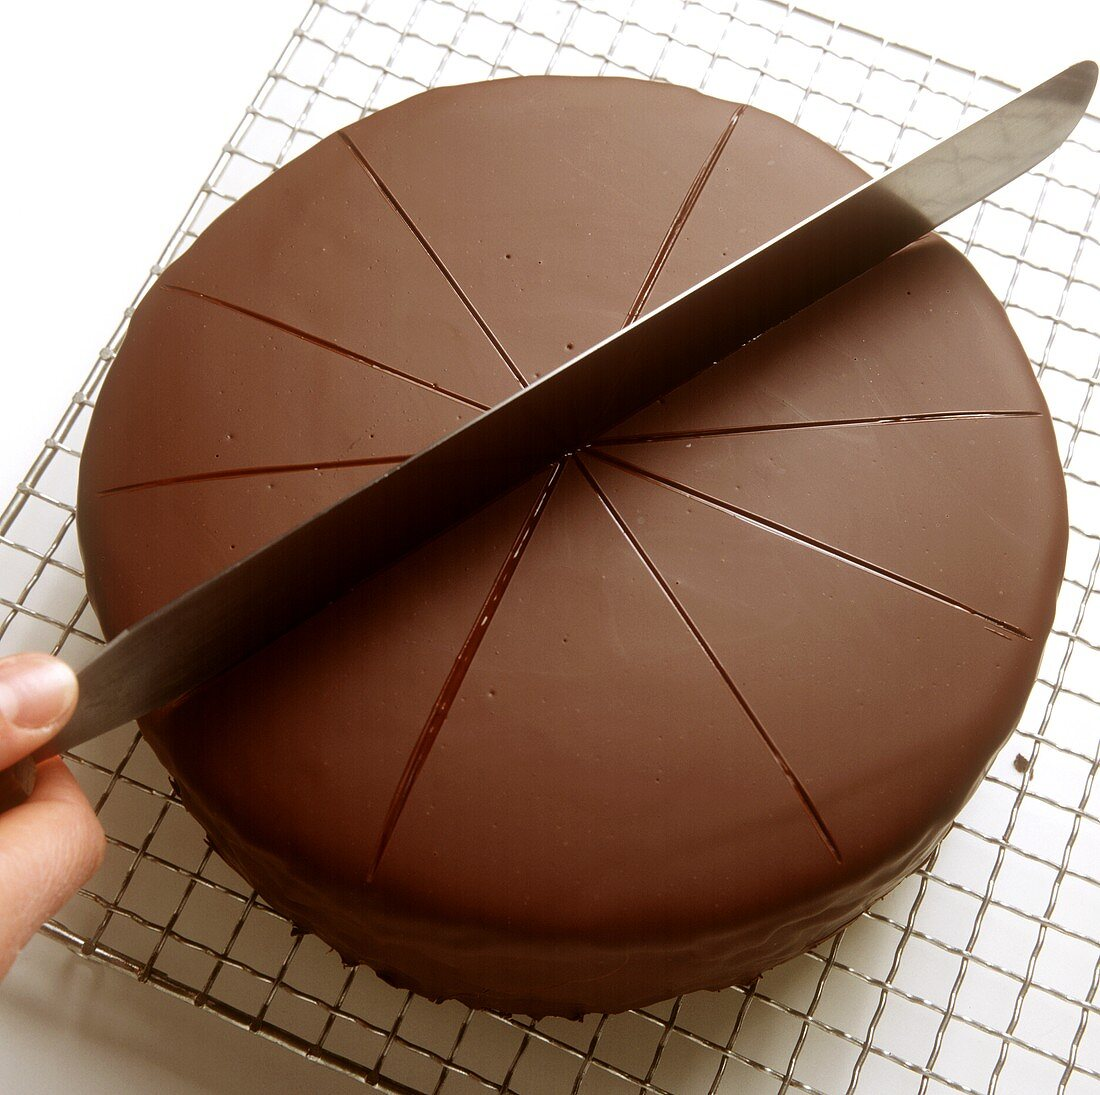 Dividing a chocolate cake into pieces